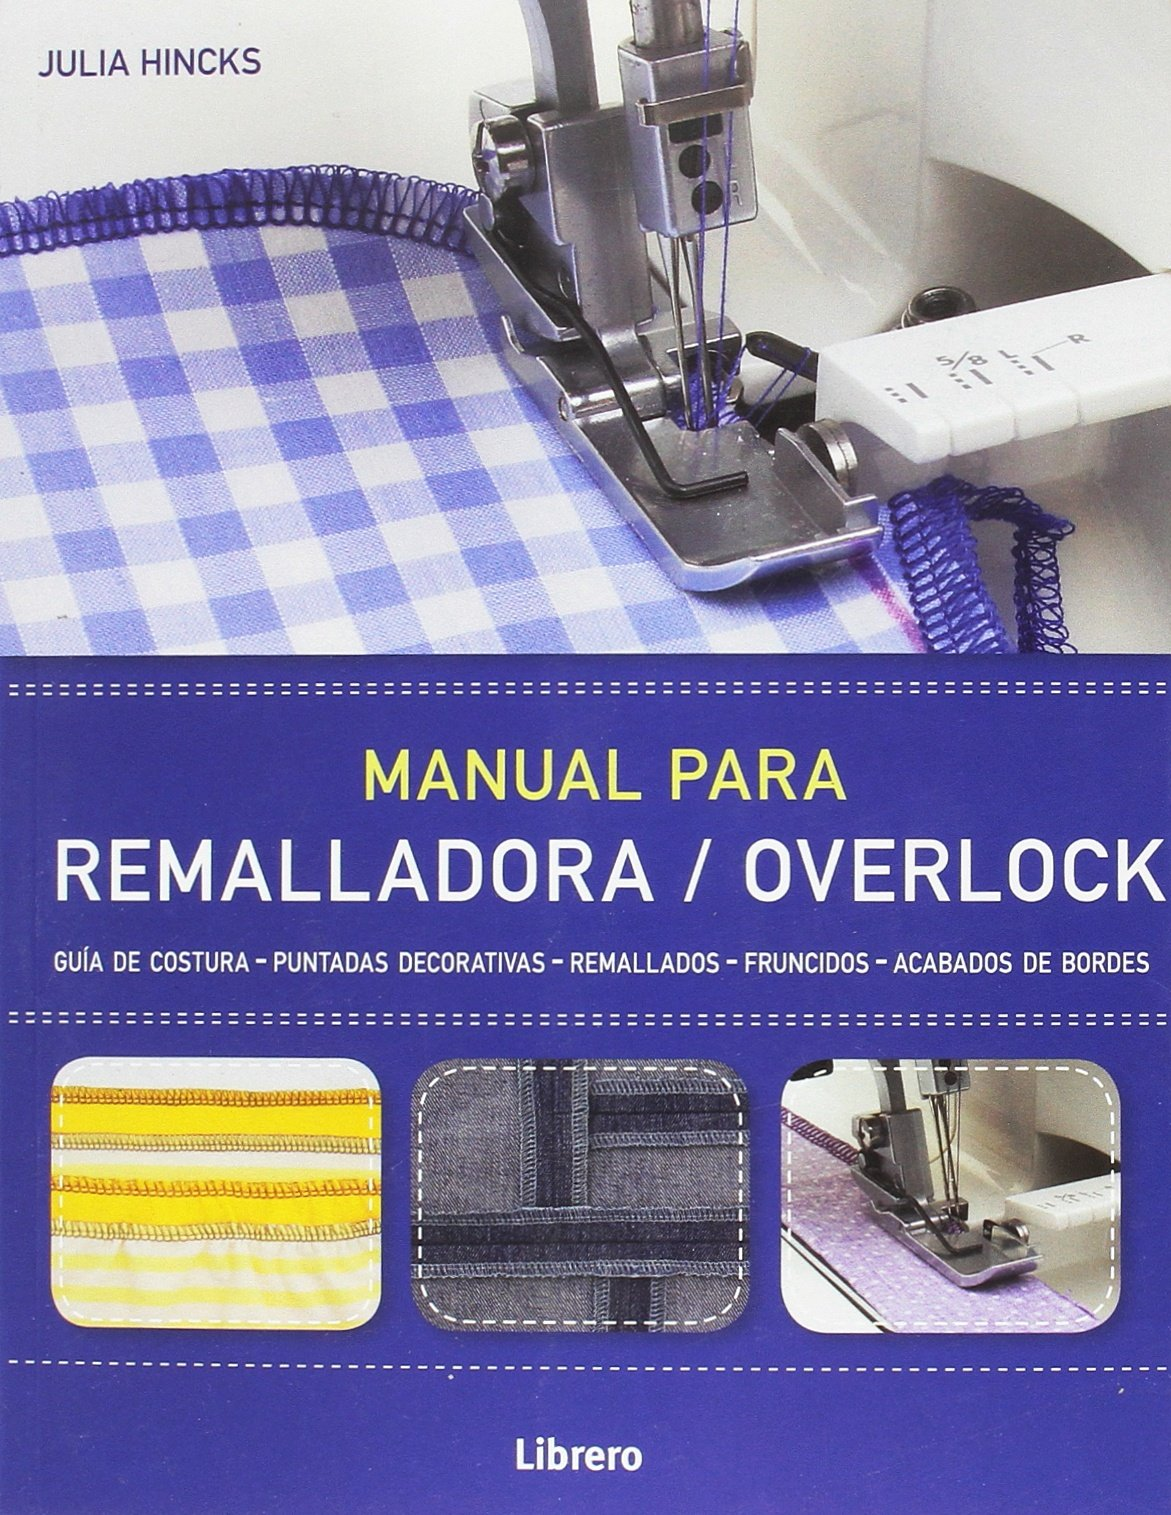 Manual para remalladora/overlock: Amazon.es: Julia Hincks: Libros